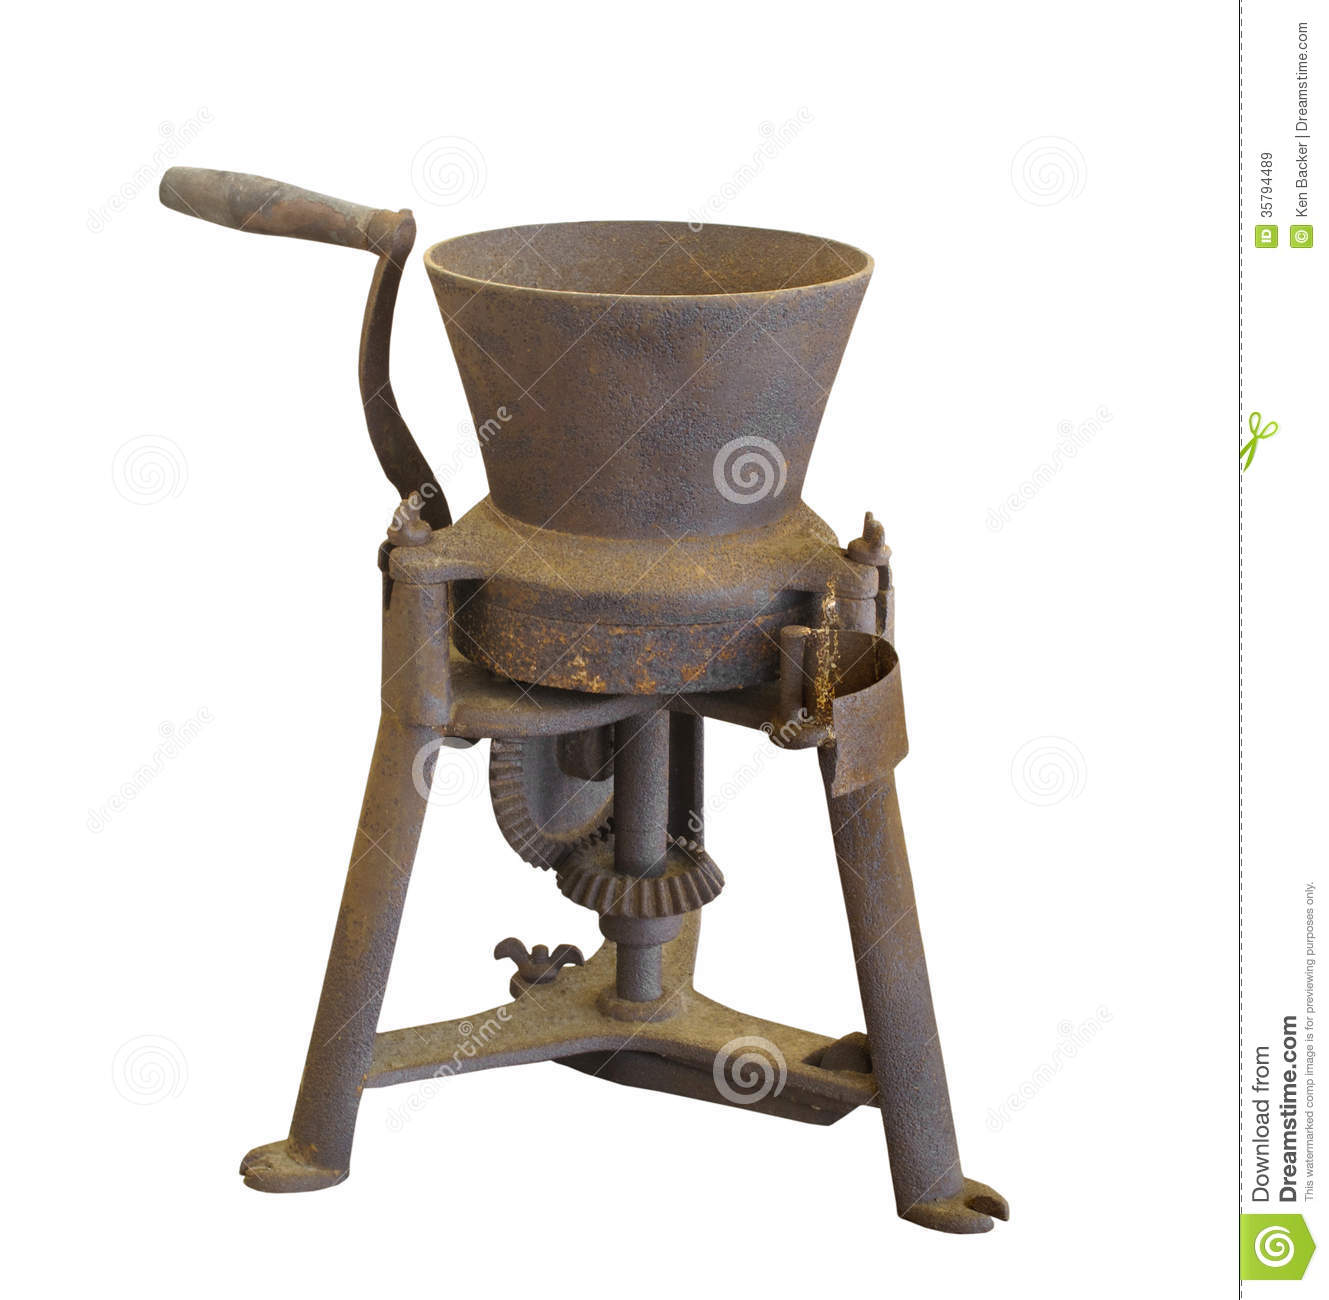 Hand Grinders For Metal ~ Old grinding mill isolated royalty free stock images